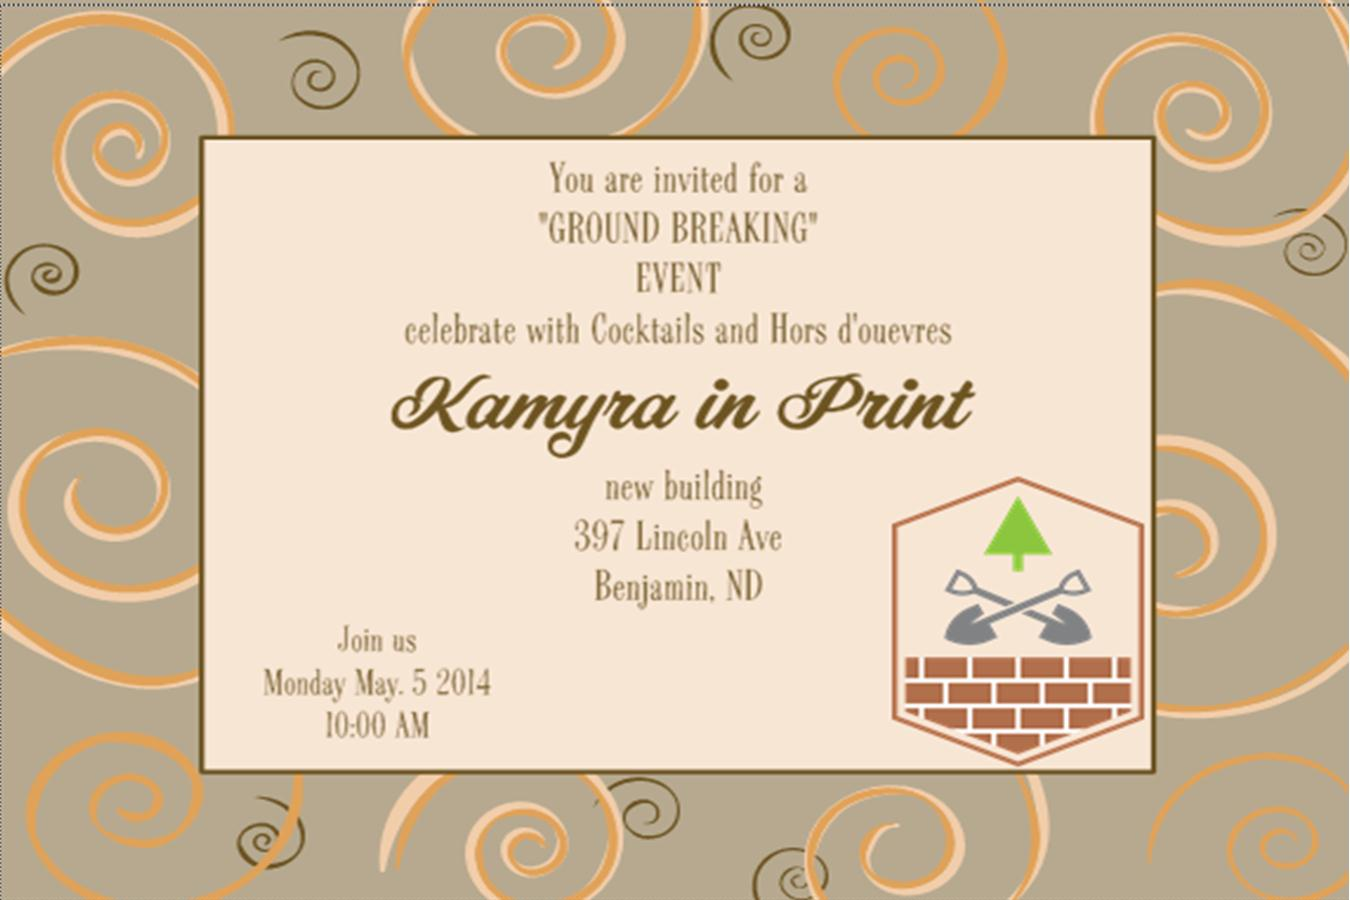 Grand Opening Invitations and Ground Breaking invitations NEW – Grand Opening Party Invitations